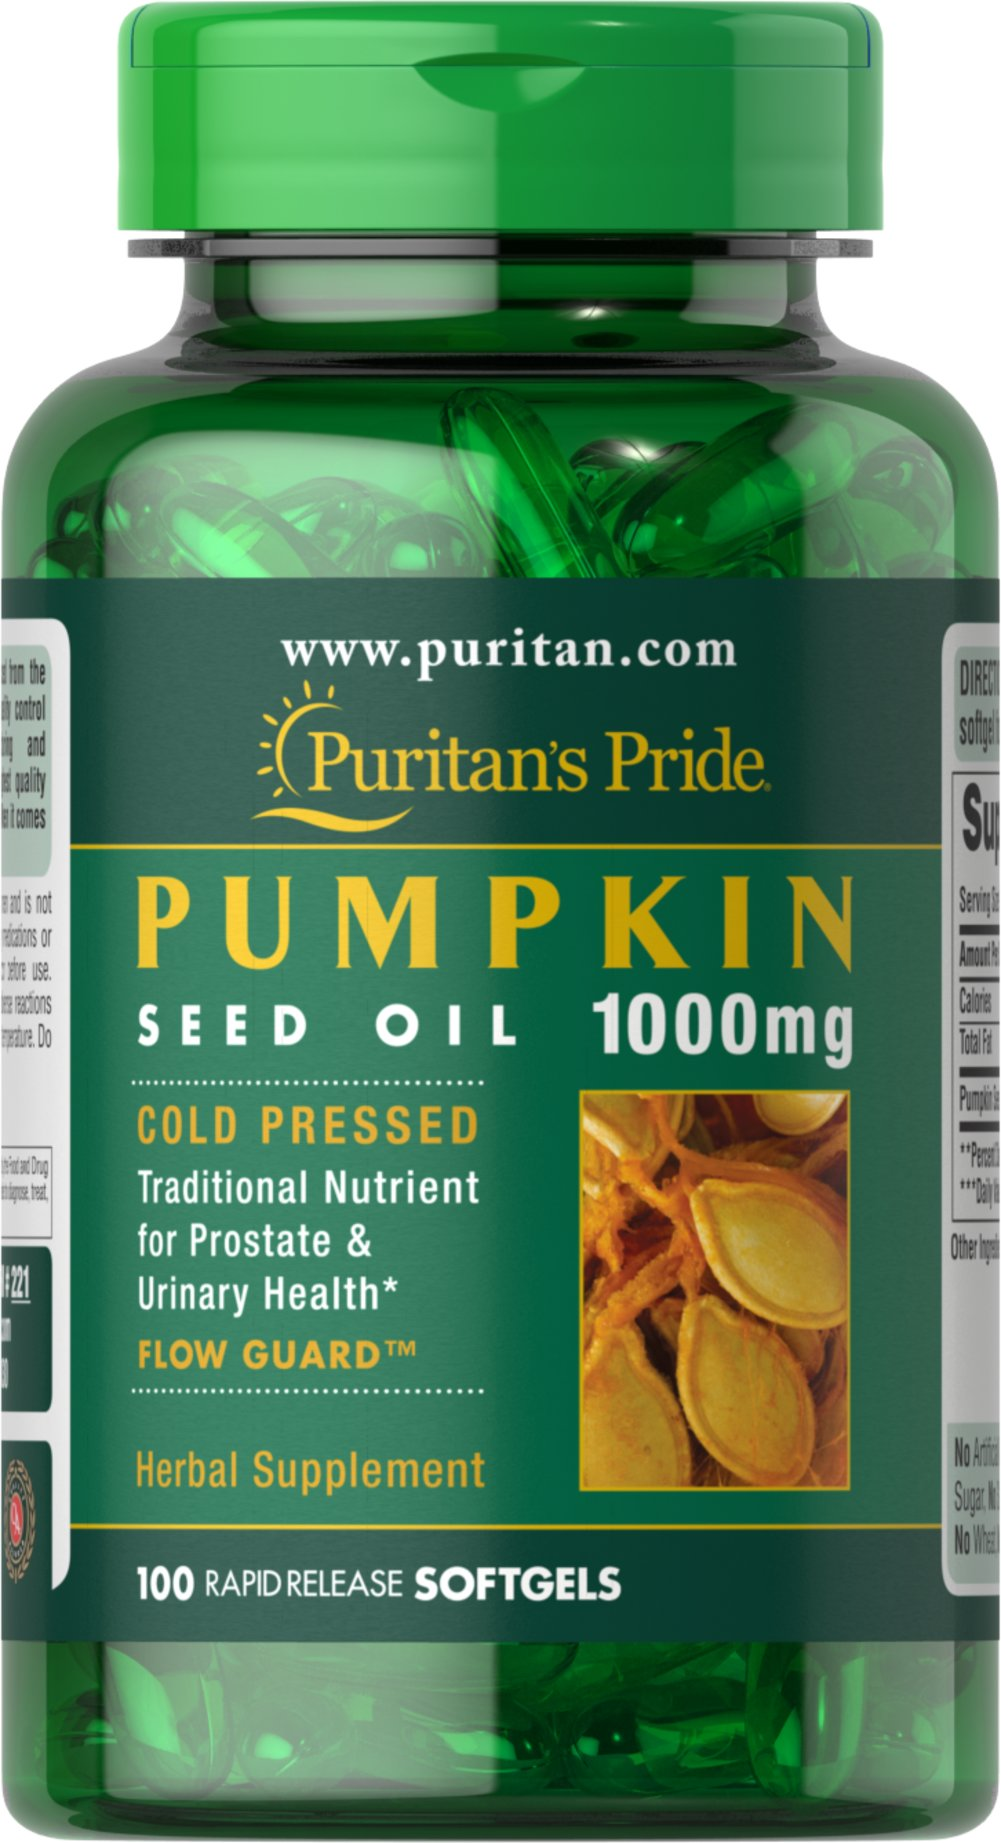 Pumpkin Seed Oil 1000 mg <p>Enjoy pure, cold-pressed pumpkin seed oil in easier-to-swallow softgels. Pumpkin seeds contain nutritional properties such as vitamins and trace minerals.</p><p></p><p></p><p></p> 100 Softgels 1000 mg $10.99